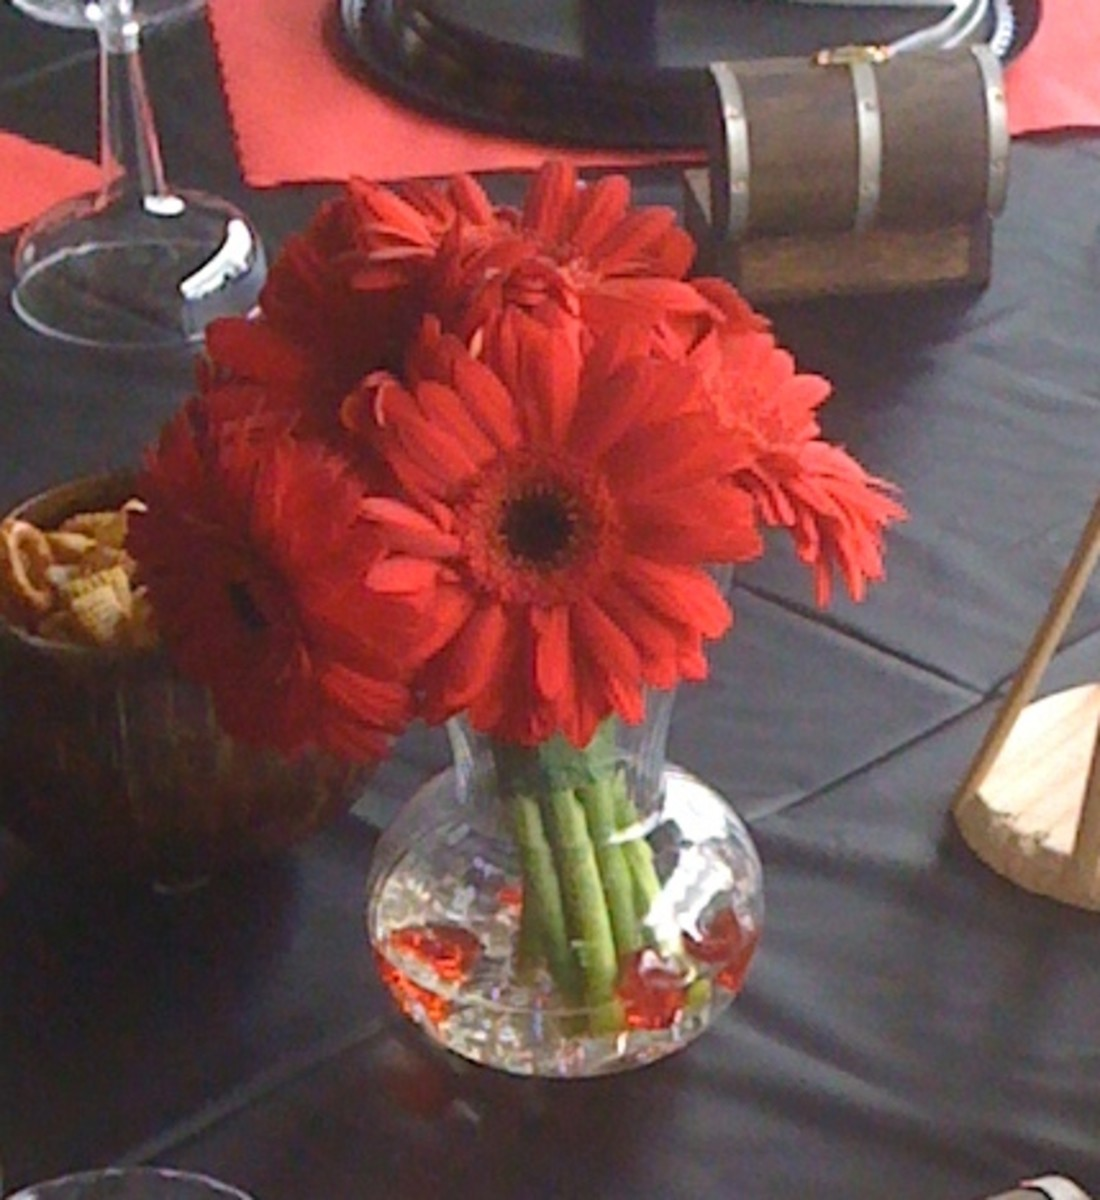 Fun and festive table decorations from the Brooks pirate wedding.